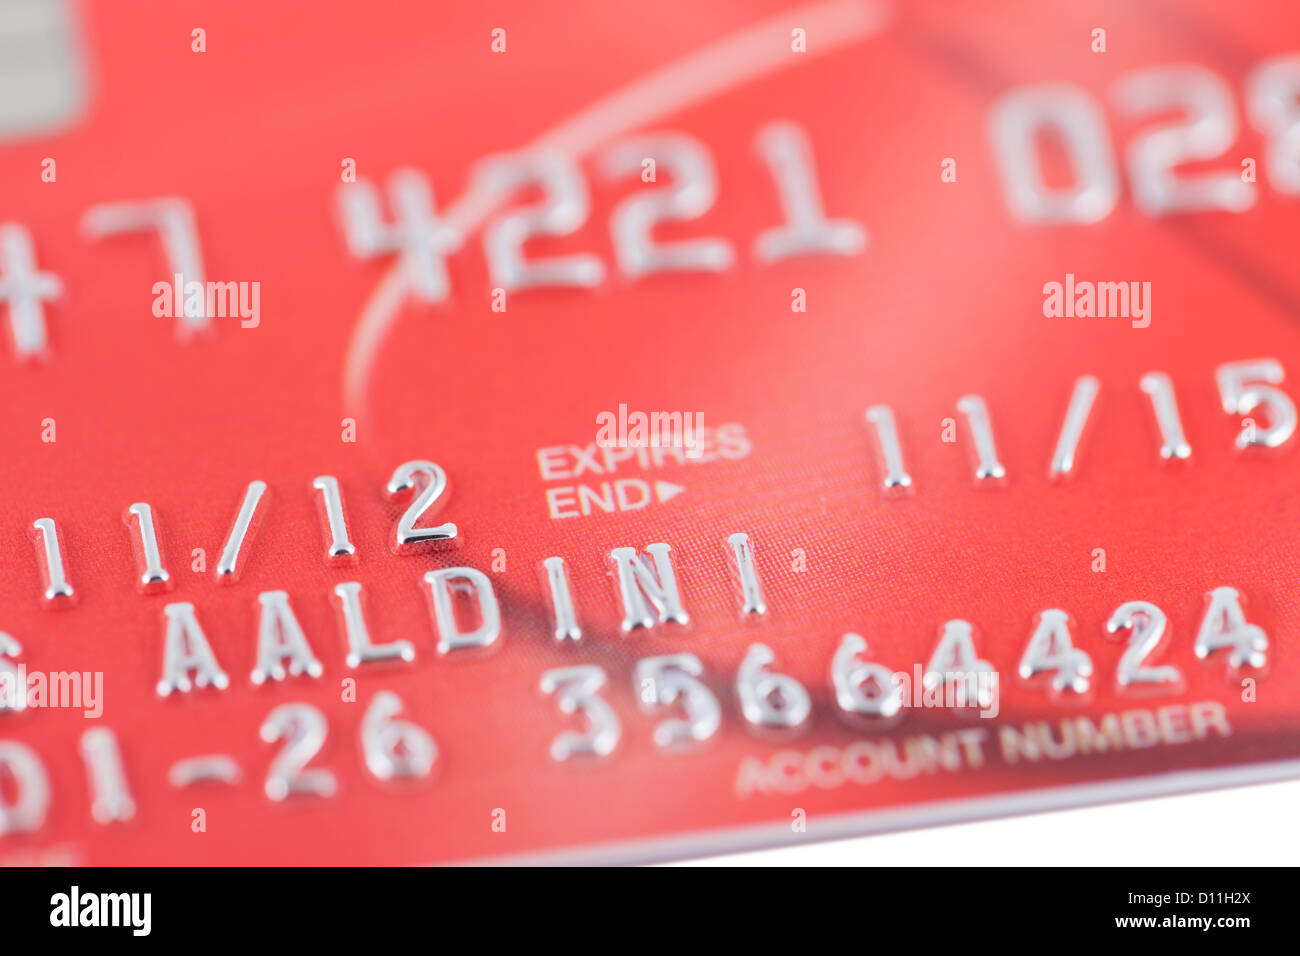 Credit card personal details - Stock Image